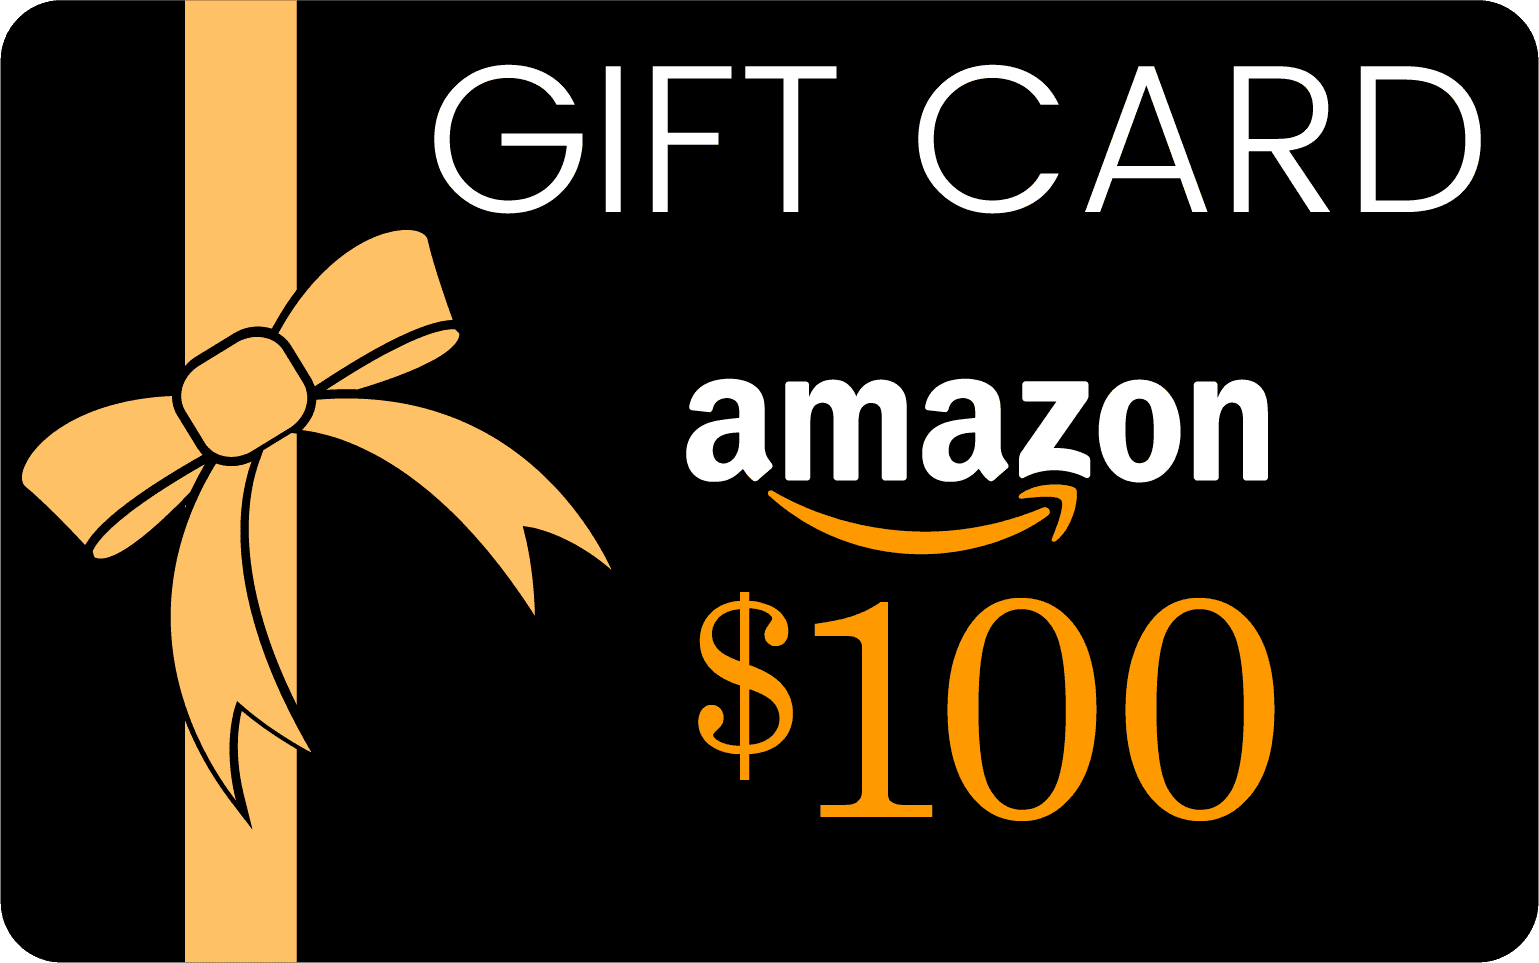 How To Redeem Or Add Amazon Gift Card Code To An Amazon Account